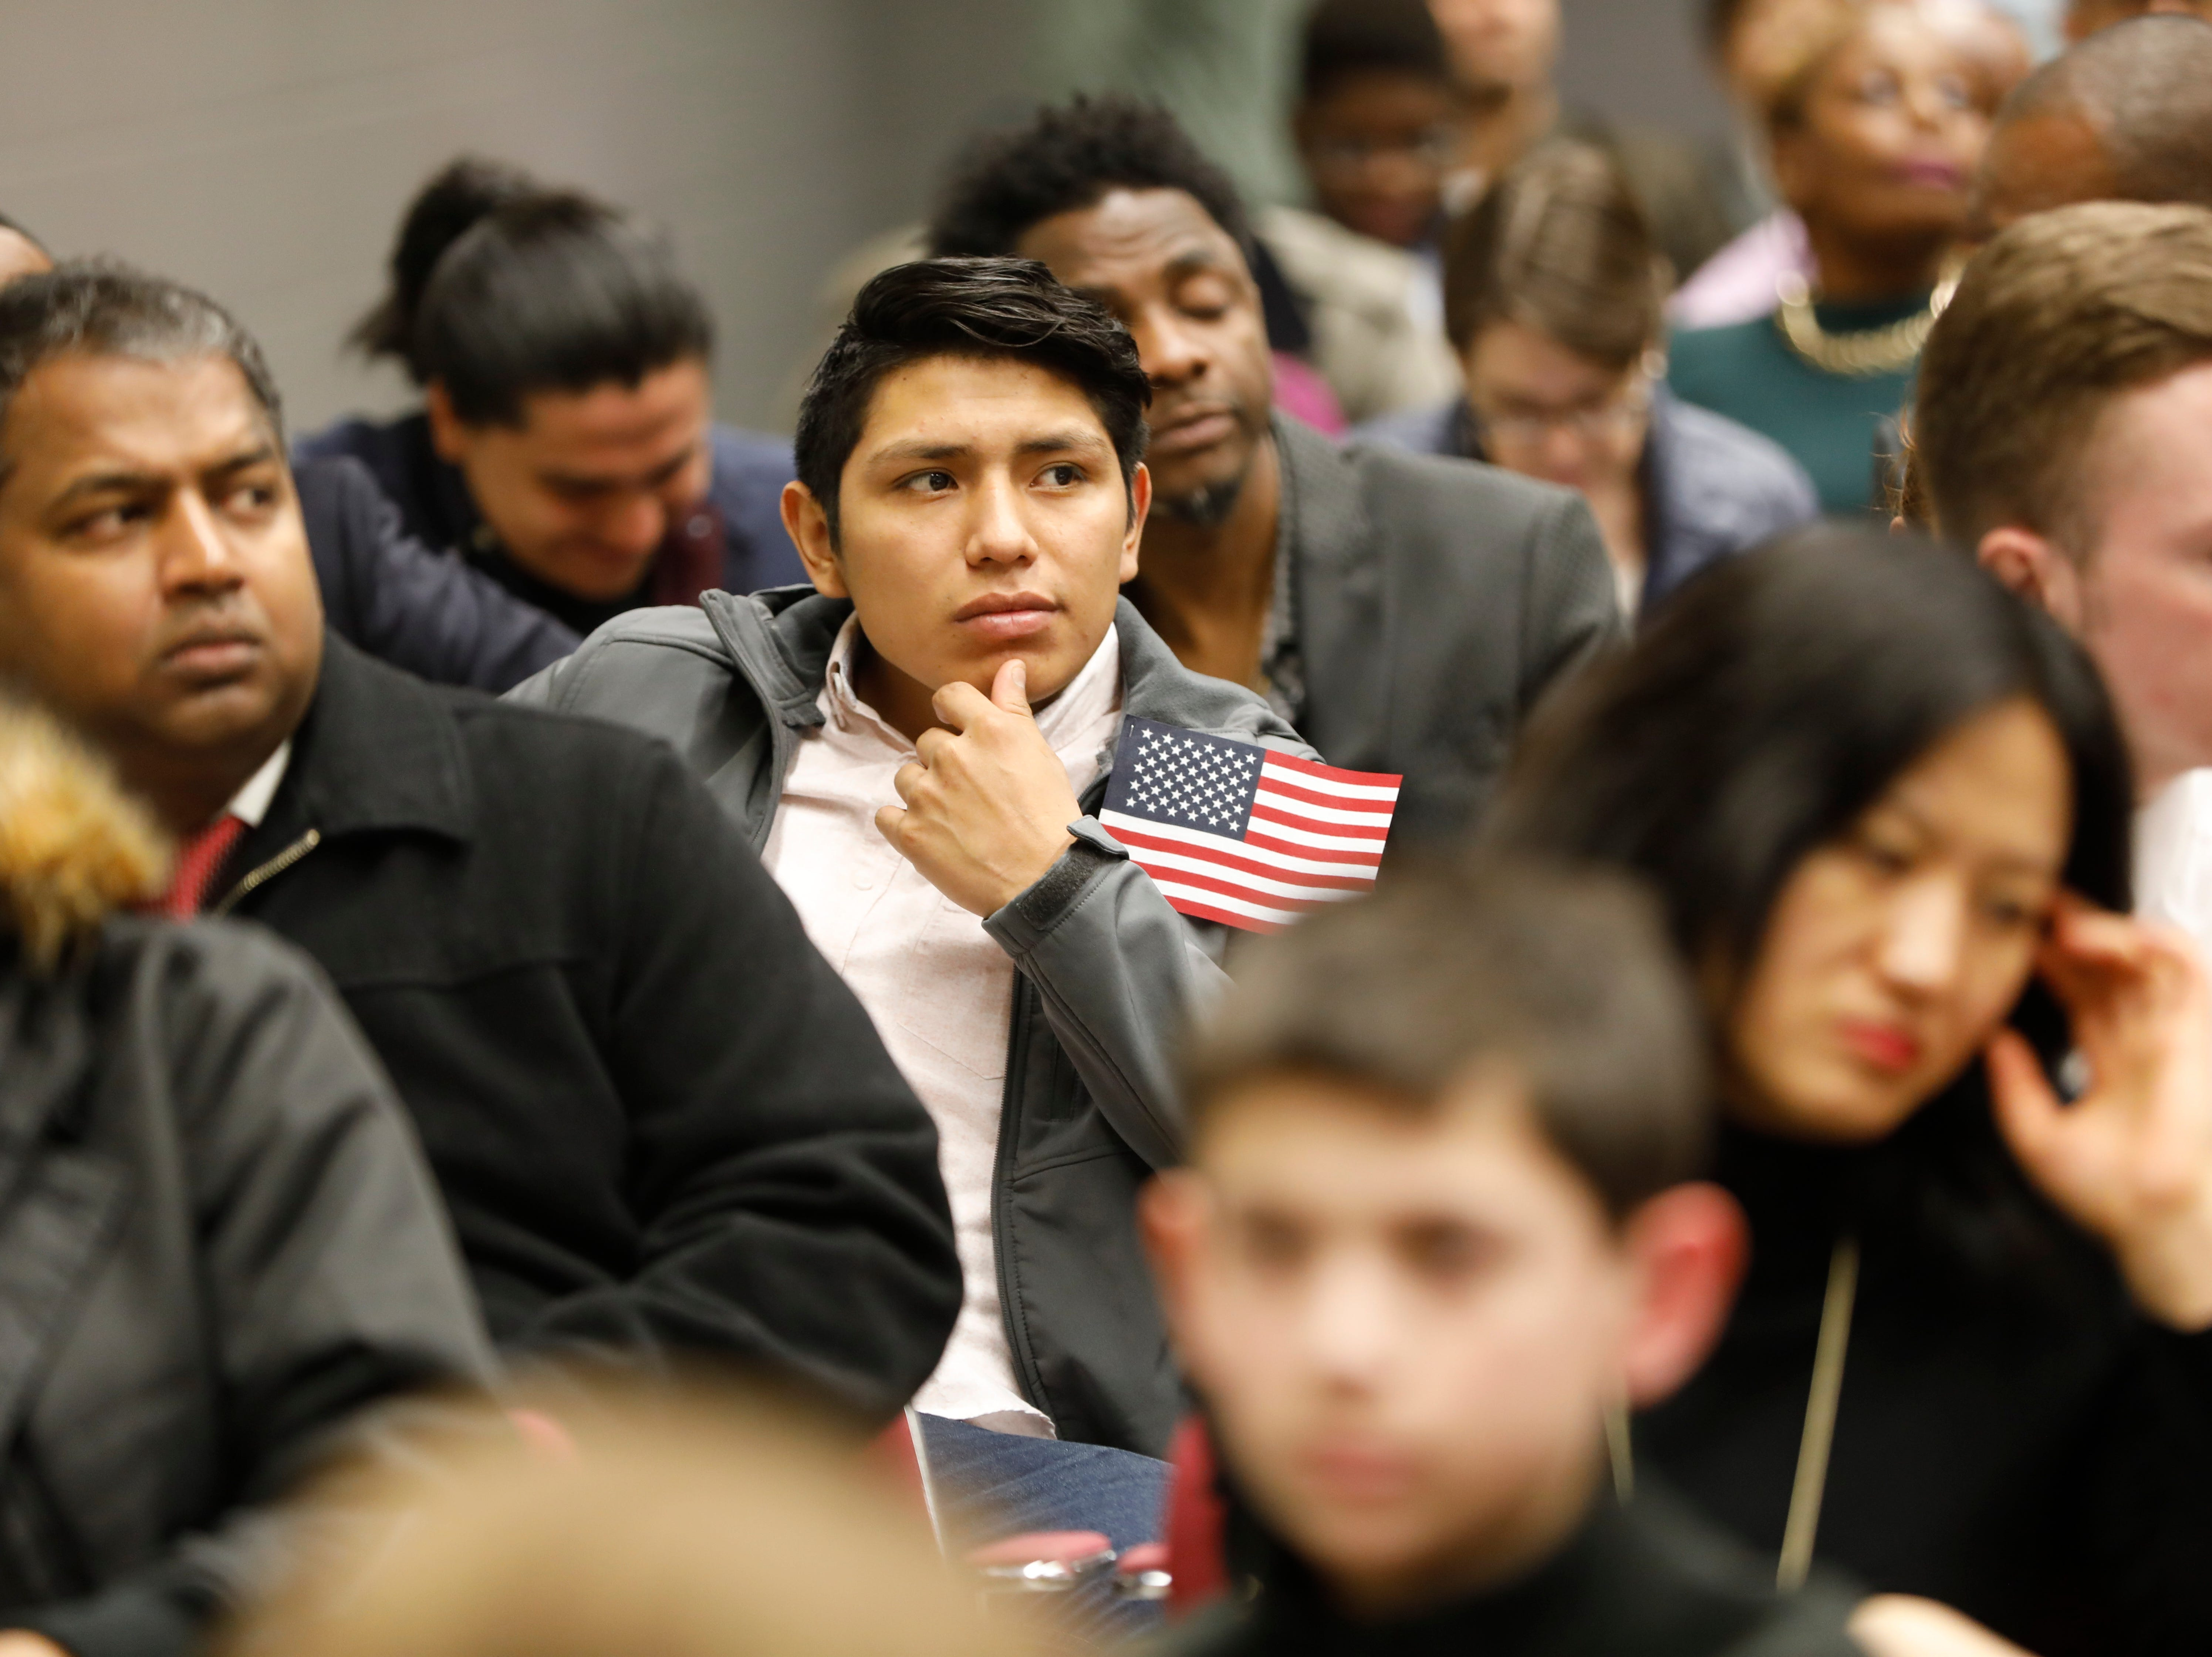 162 citizens from 39 countries were formally sworn in as citizens of the United States at a naturalization ceremony at the Rockland County Fire Training Center in Pomona on April 13, 2018.